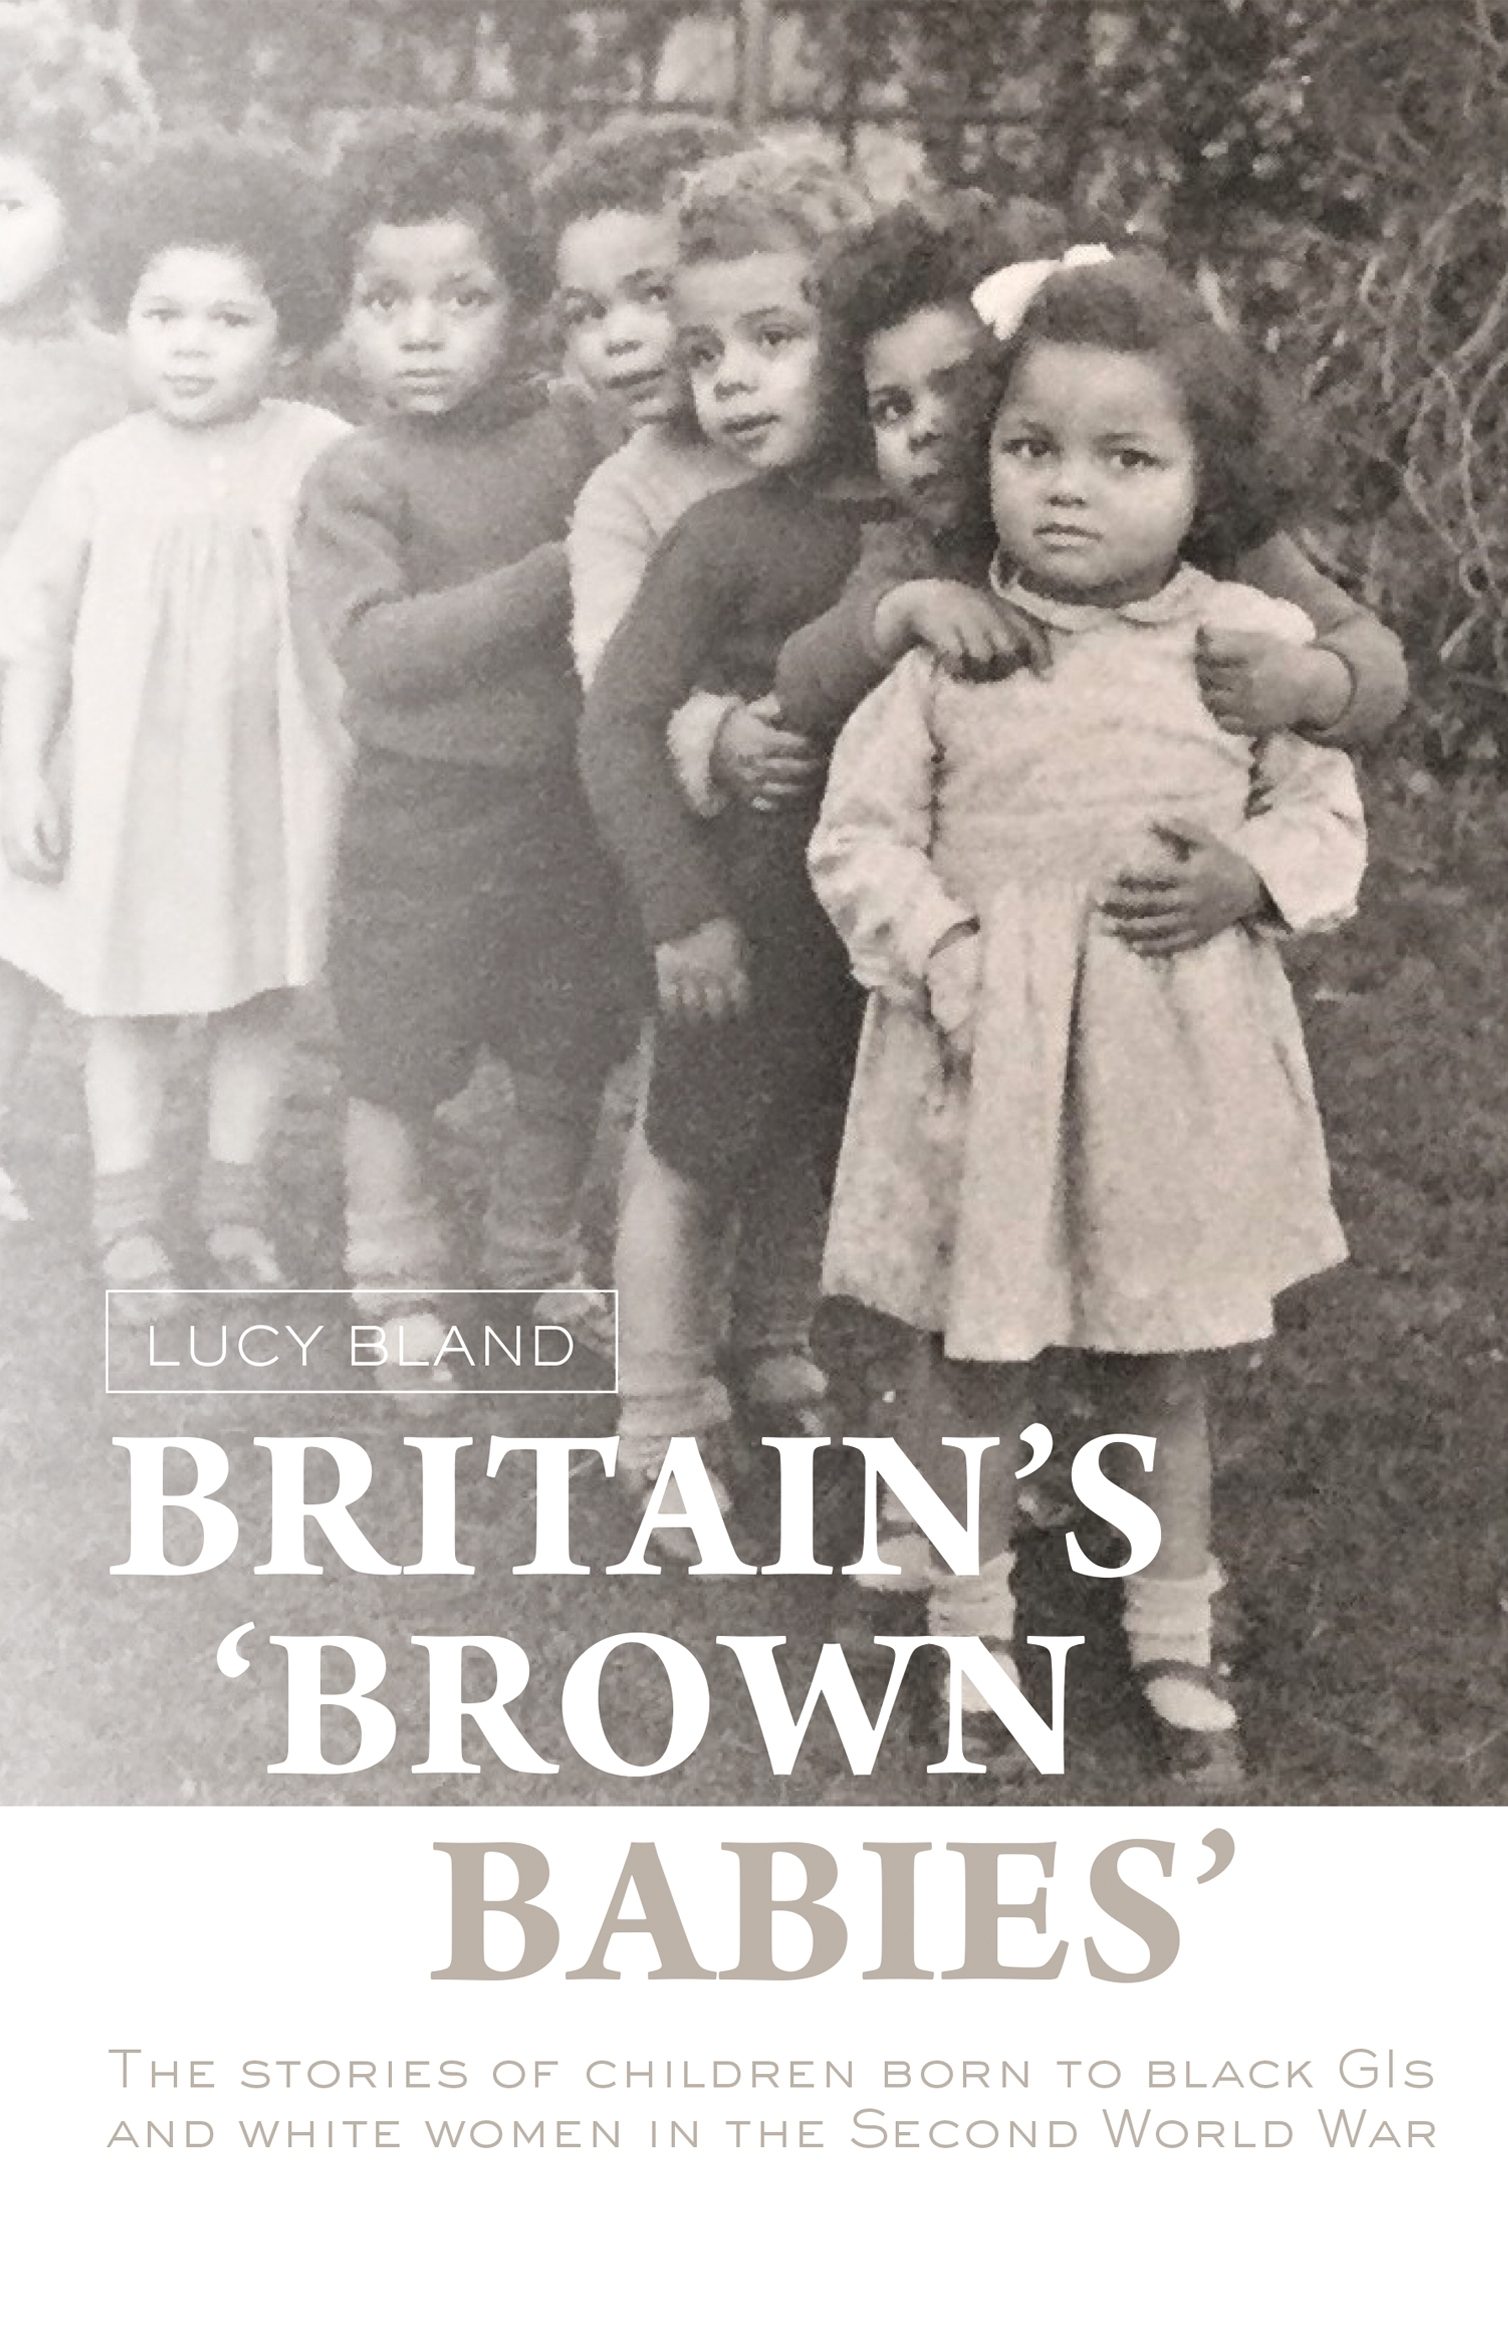 Britain's 'brown babies' – Q&A with Lucy Bland